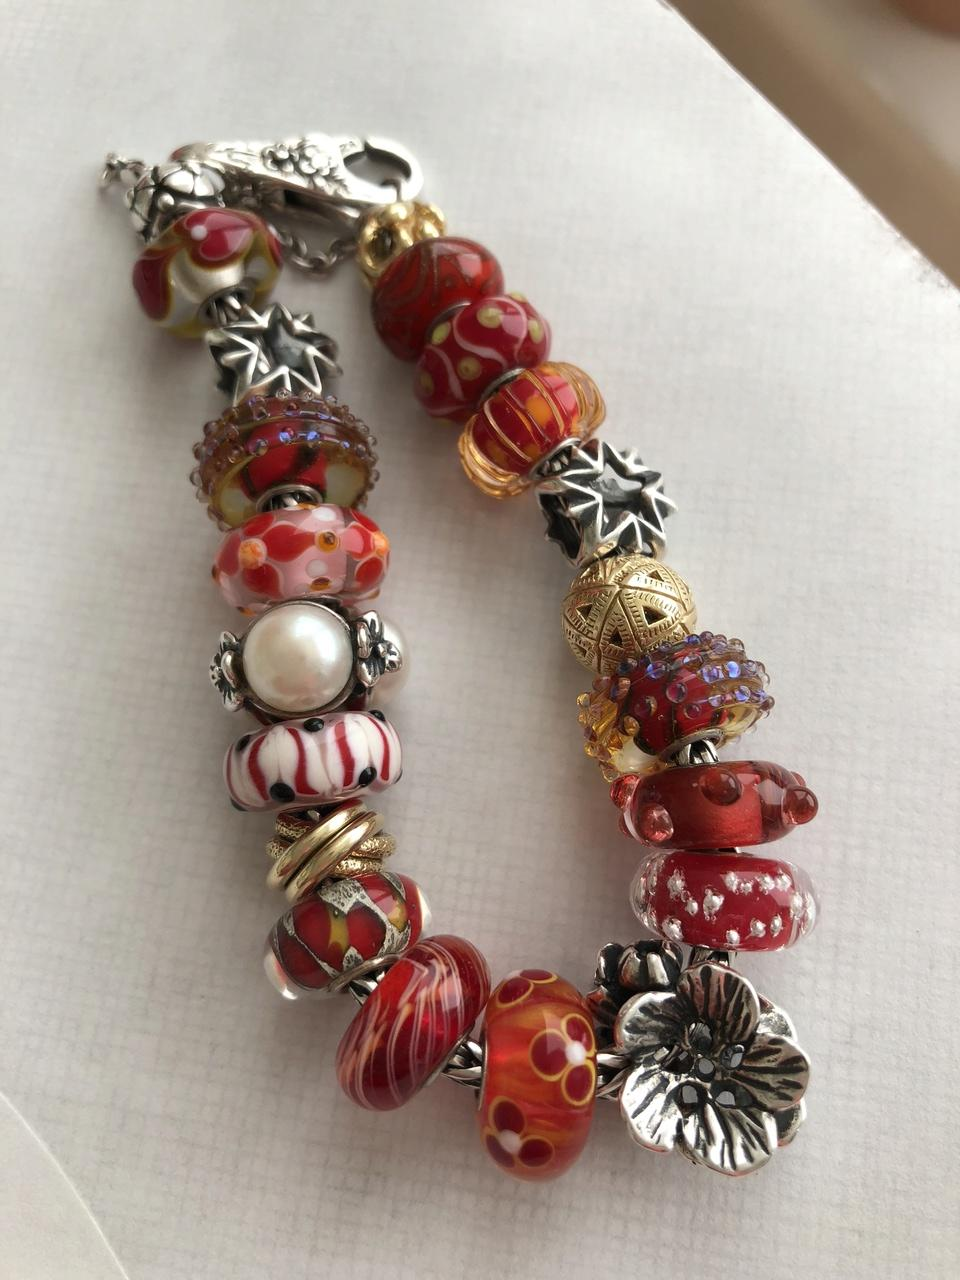 Show Your Holiday Bracelets Xmasre11